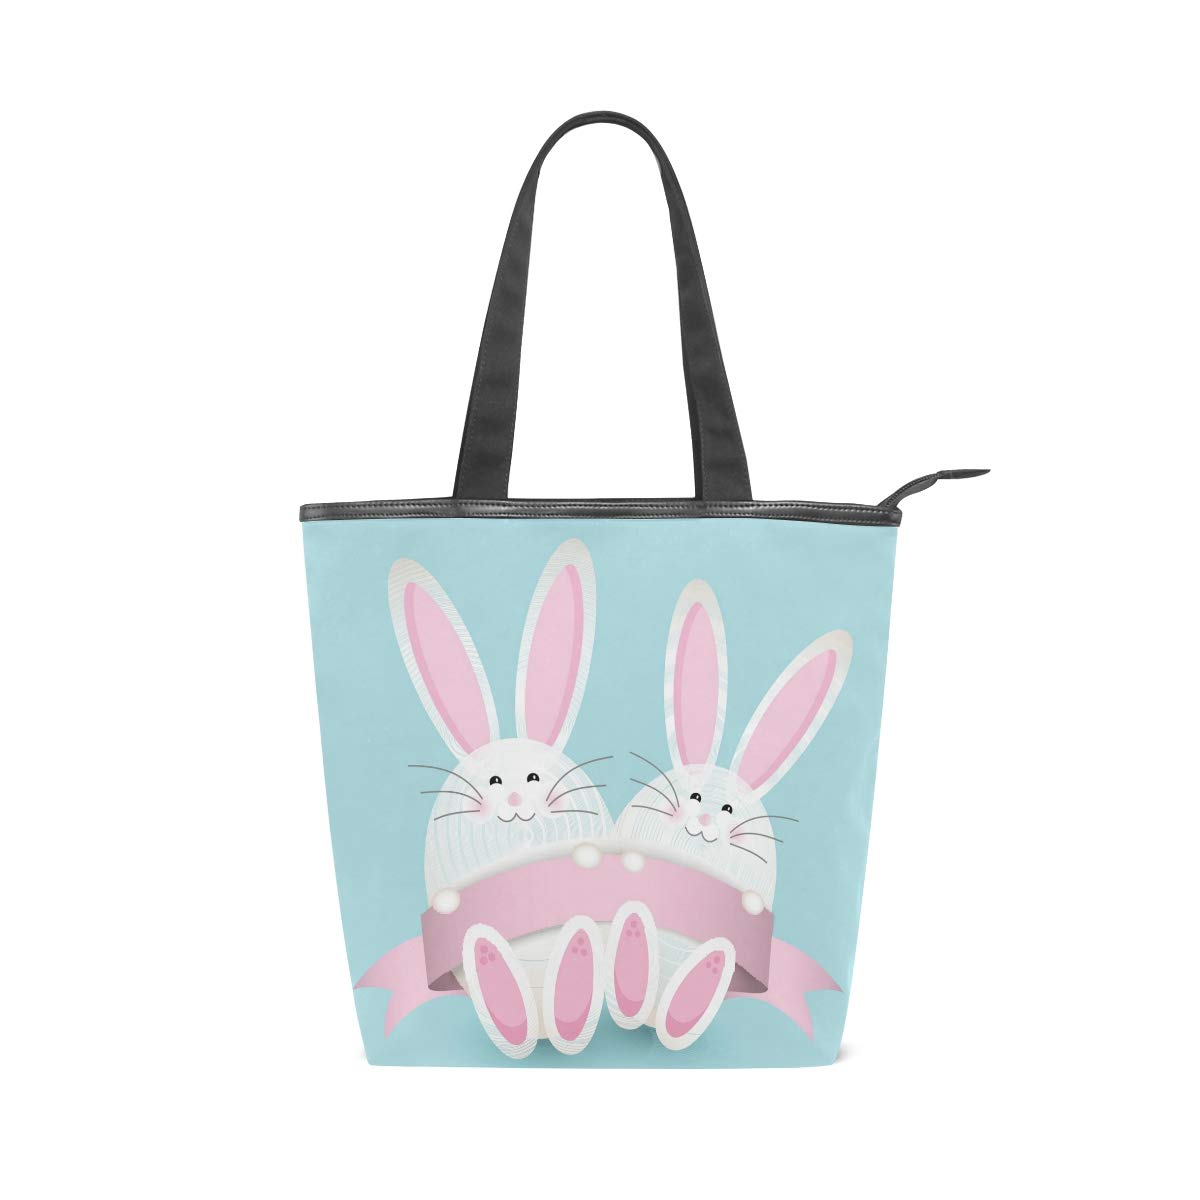 Womens Canvas Tote Bags Easter Eggs Rabbit Pink Vintage Print Top Handbags Casual Shoulder Travel Bag with Zipper